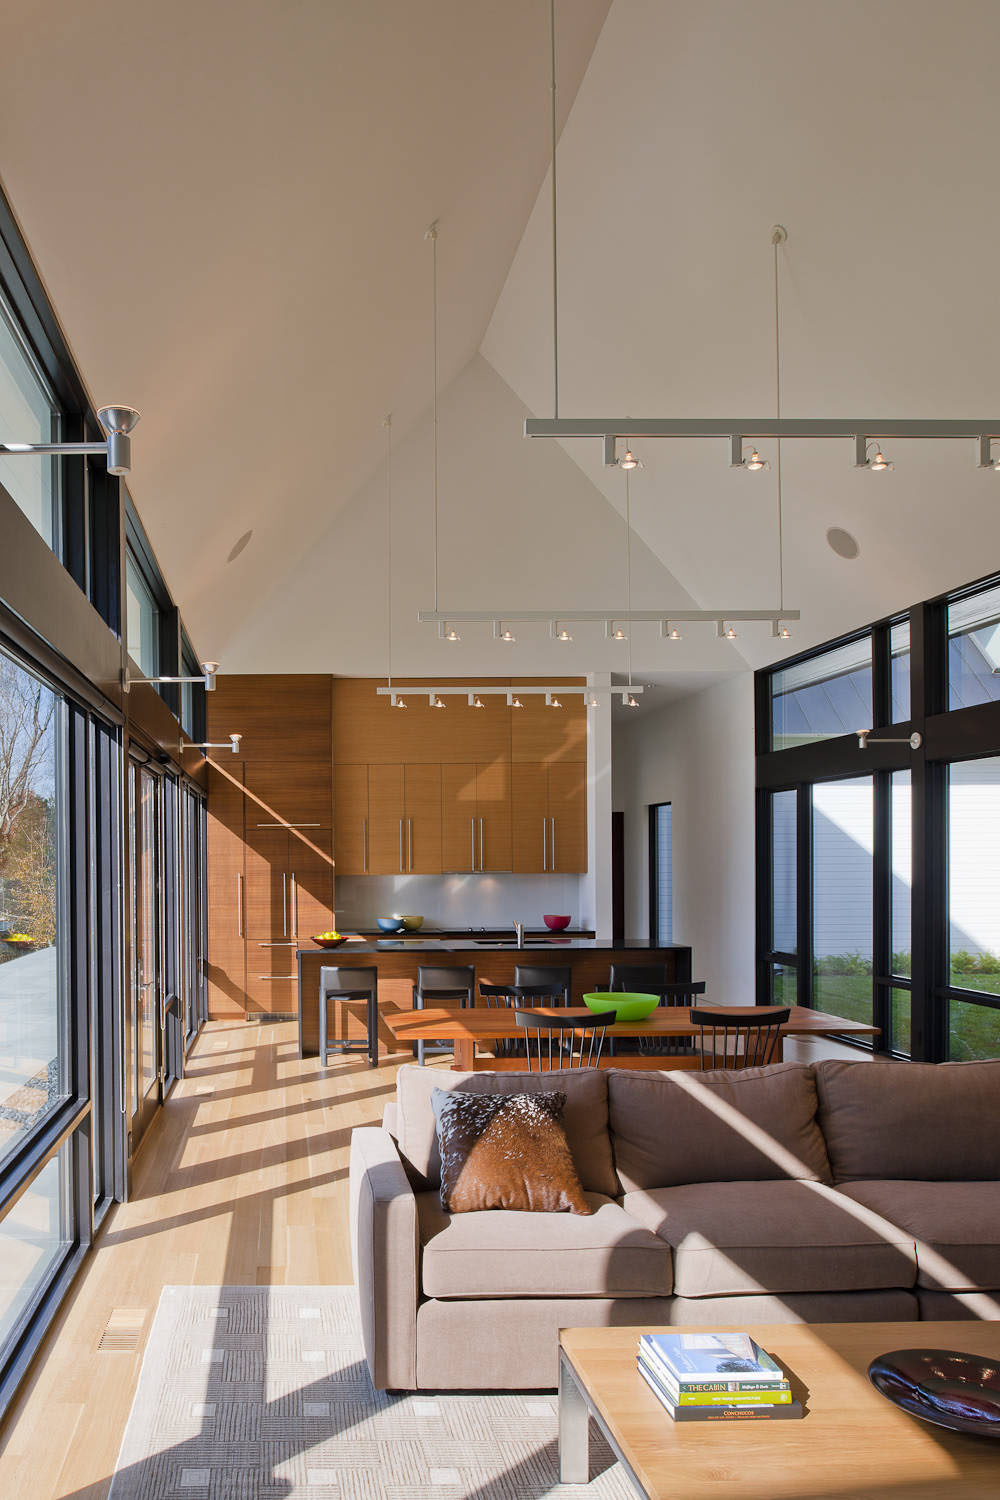 Modern house in virginia countryside idesignarch - Modern house interior design ...